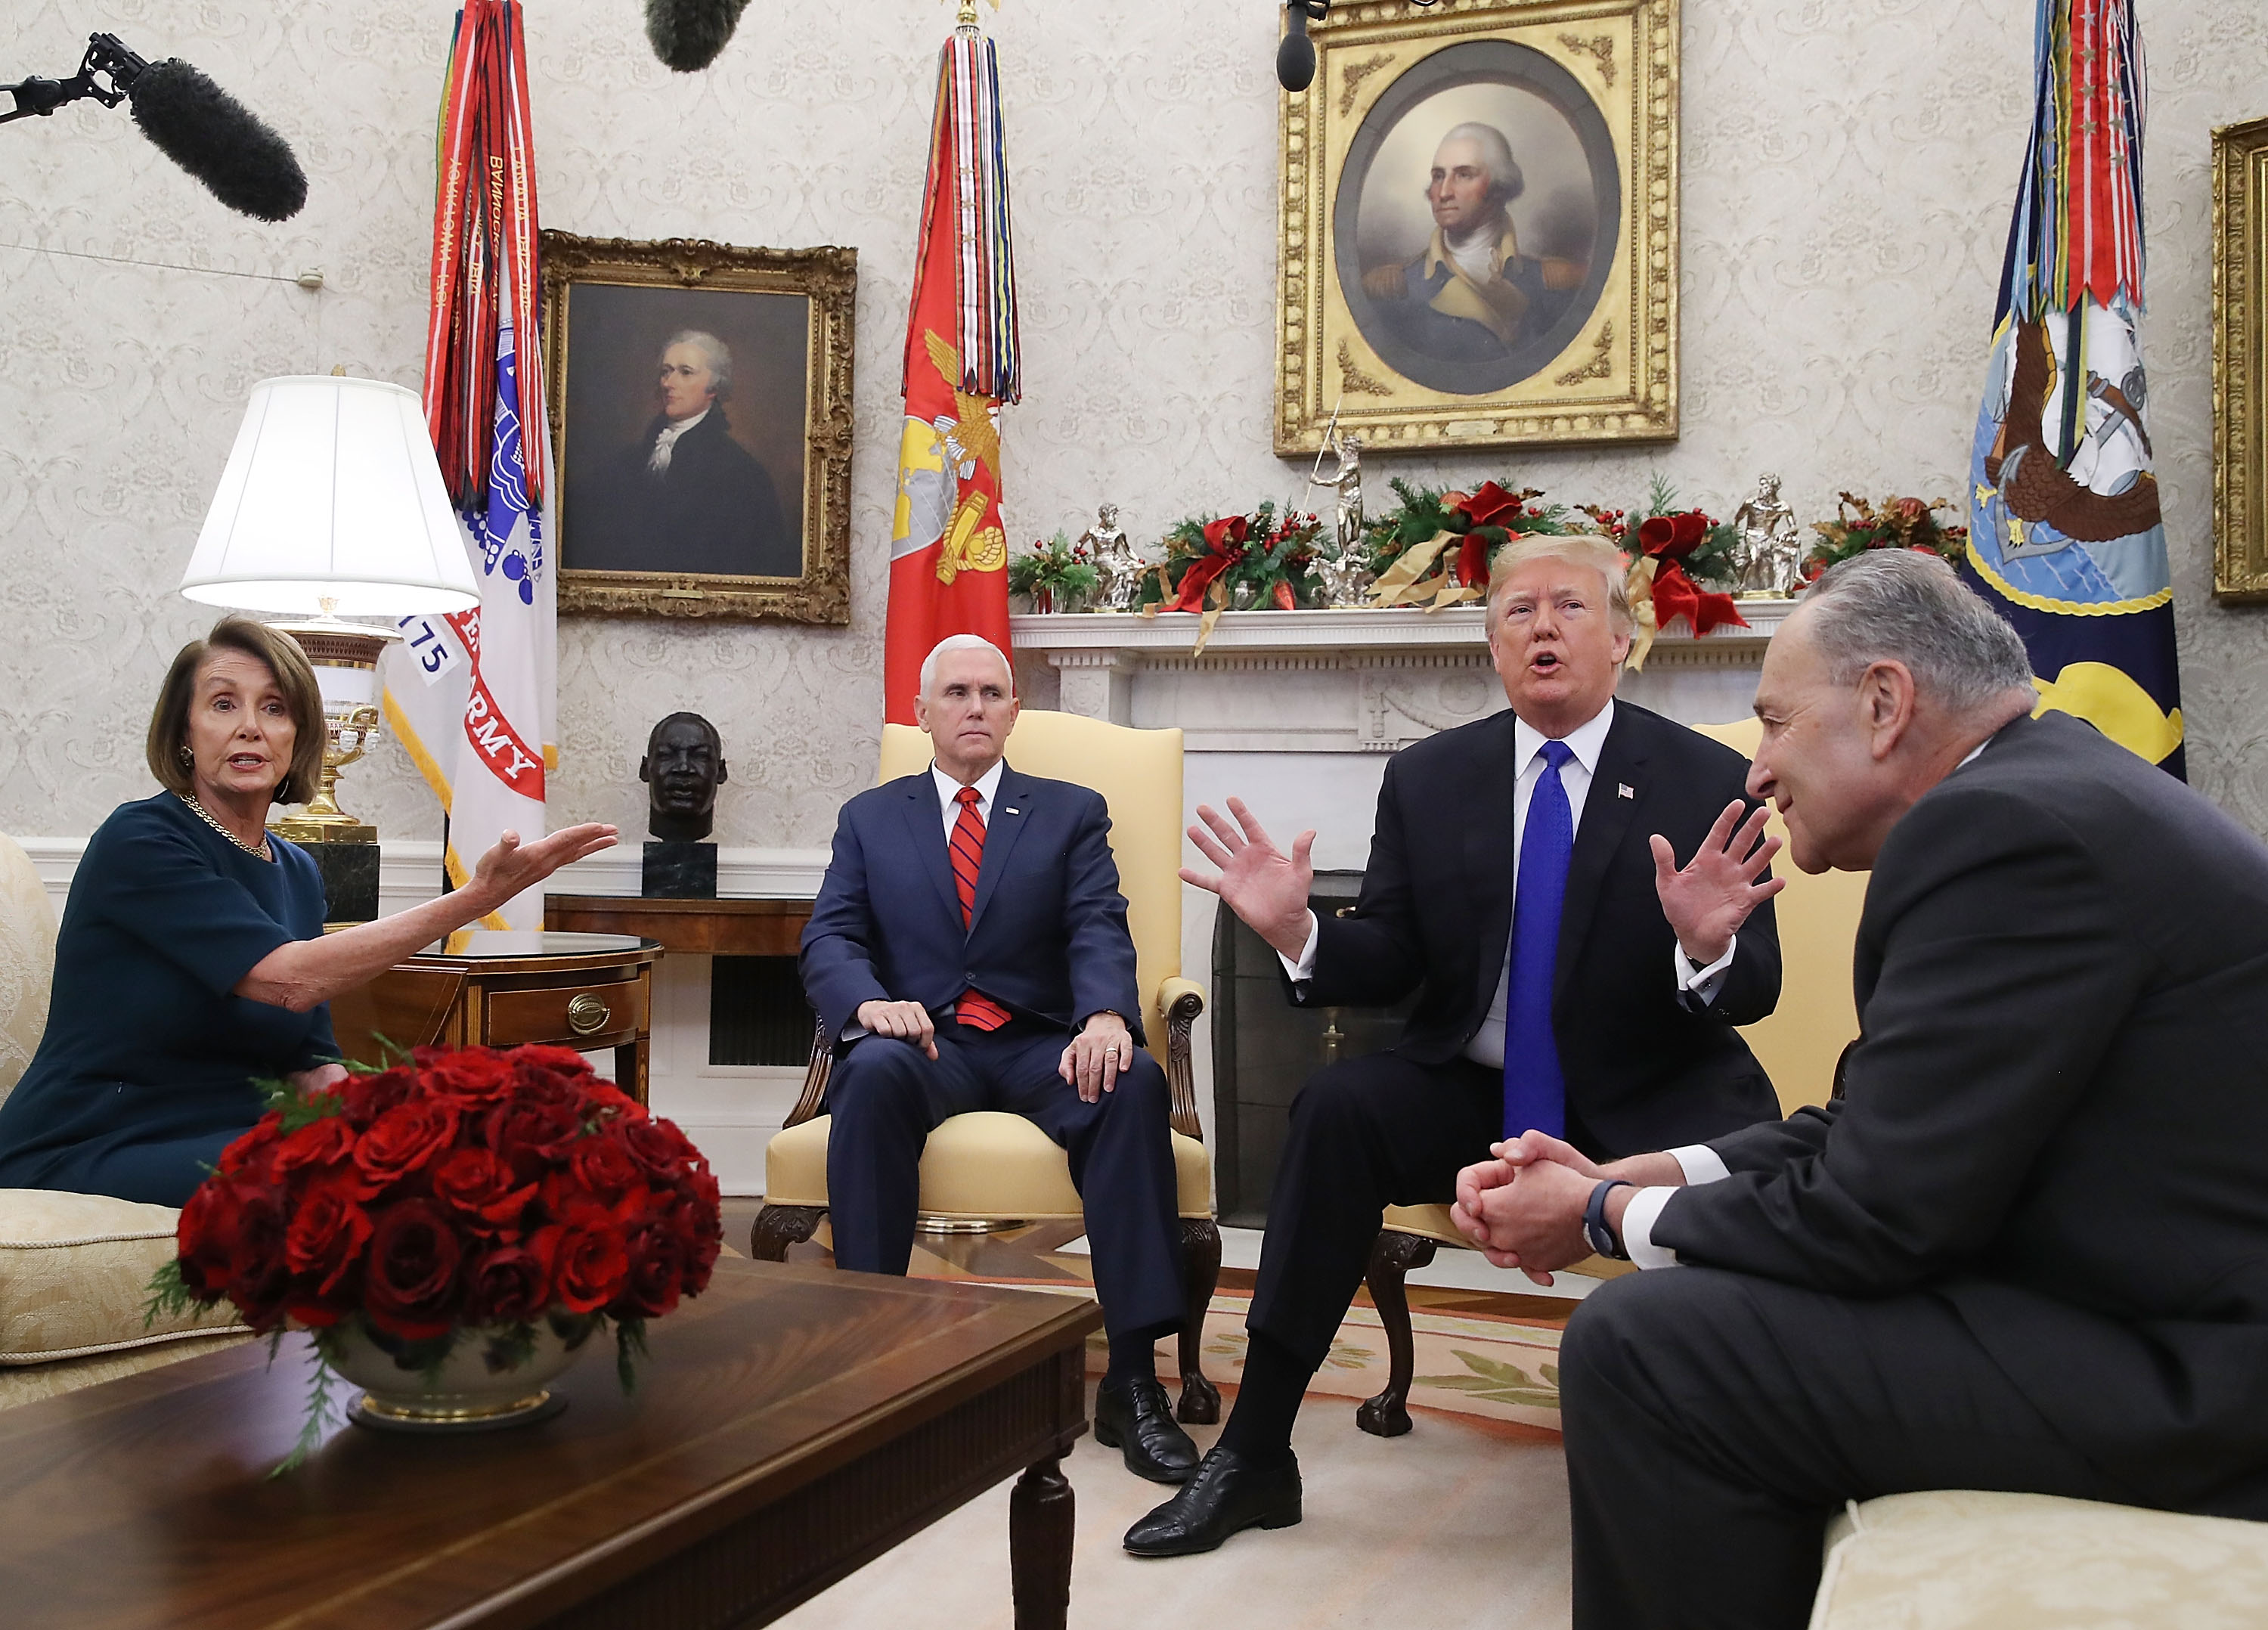 President Donald Trump argues about border security with Senate Minority Leader Chuck Schumer and House Minority Leader Nancy Pelosi as VP Mike Pence sits nearby in the Oval Office (Mark Wilson/Getty Images)